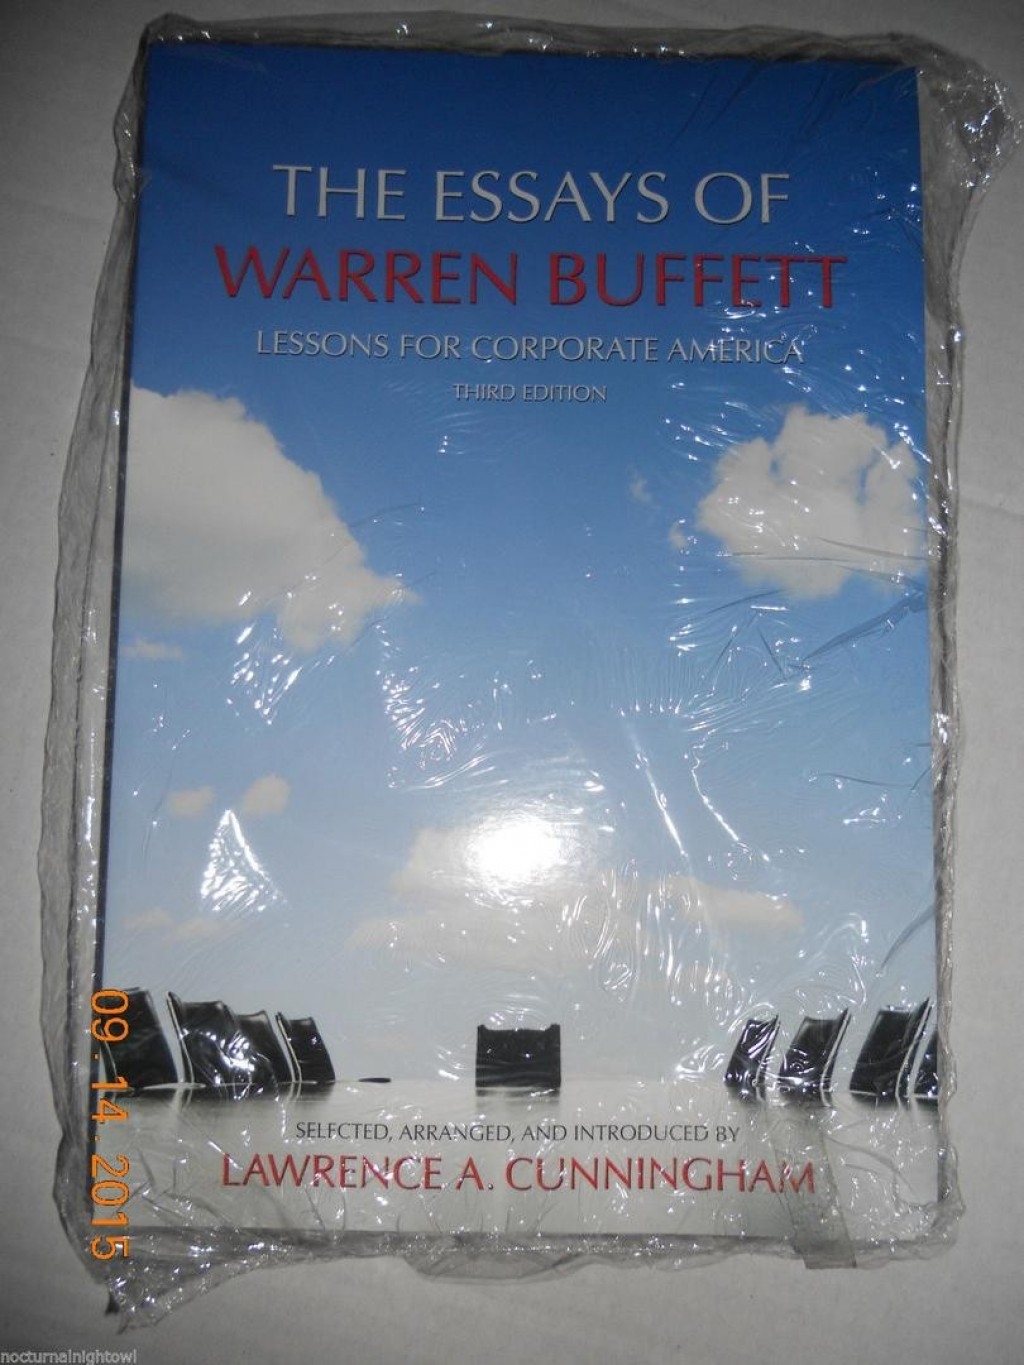 024 Essay Example 1 0b1c1ea30173ee0ca42df663c49fe933 The Essays Of Warren Buffett Lessons For Corporate Remarkable America Third Edition 3rd Second Pdf Audio Book Large